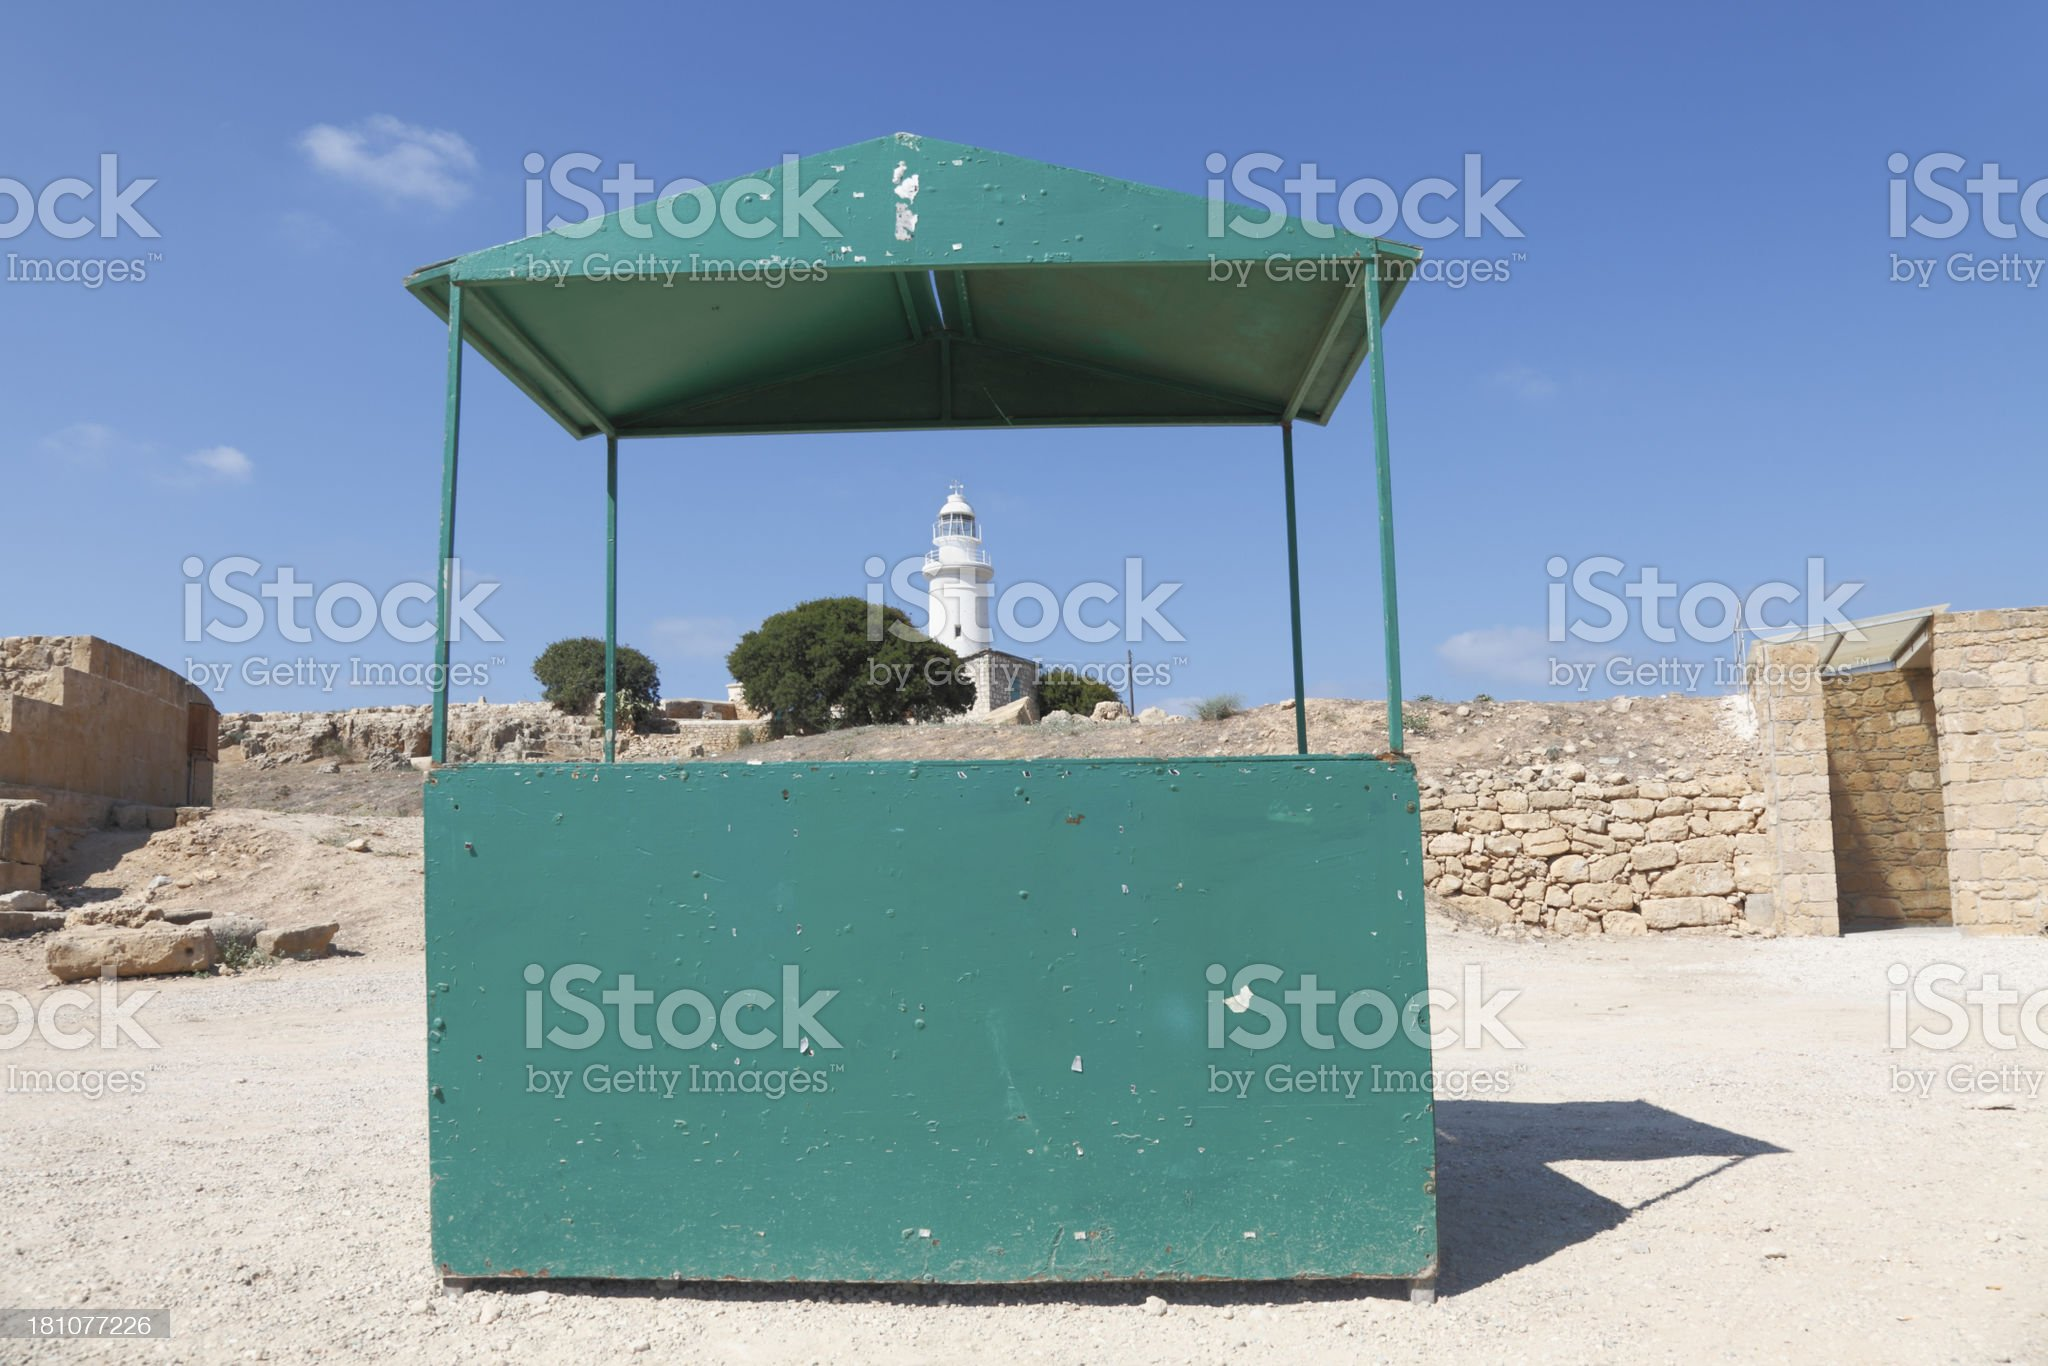 Paphos archeological site empty green information booth  Cyprus royalty-free stock photo